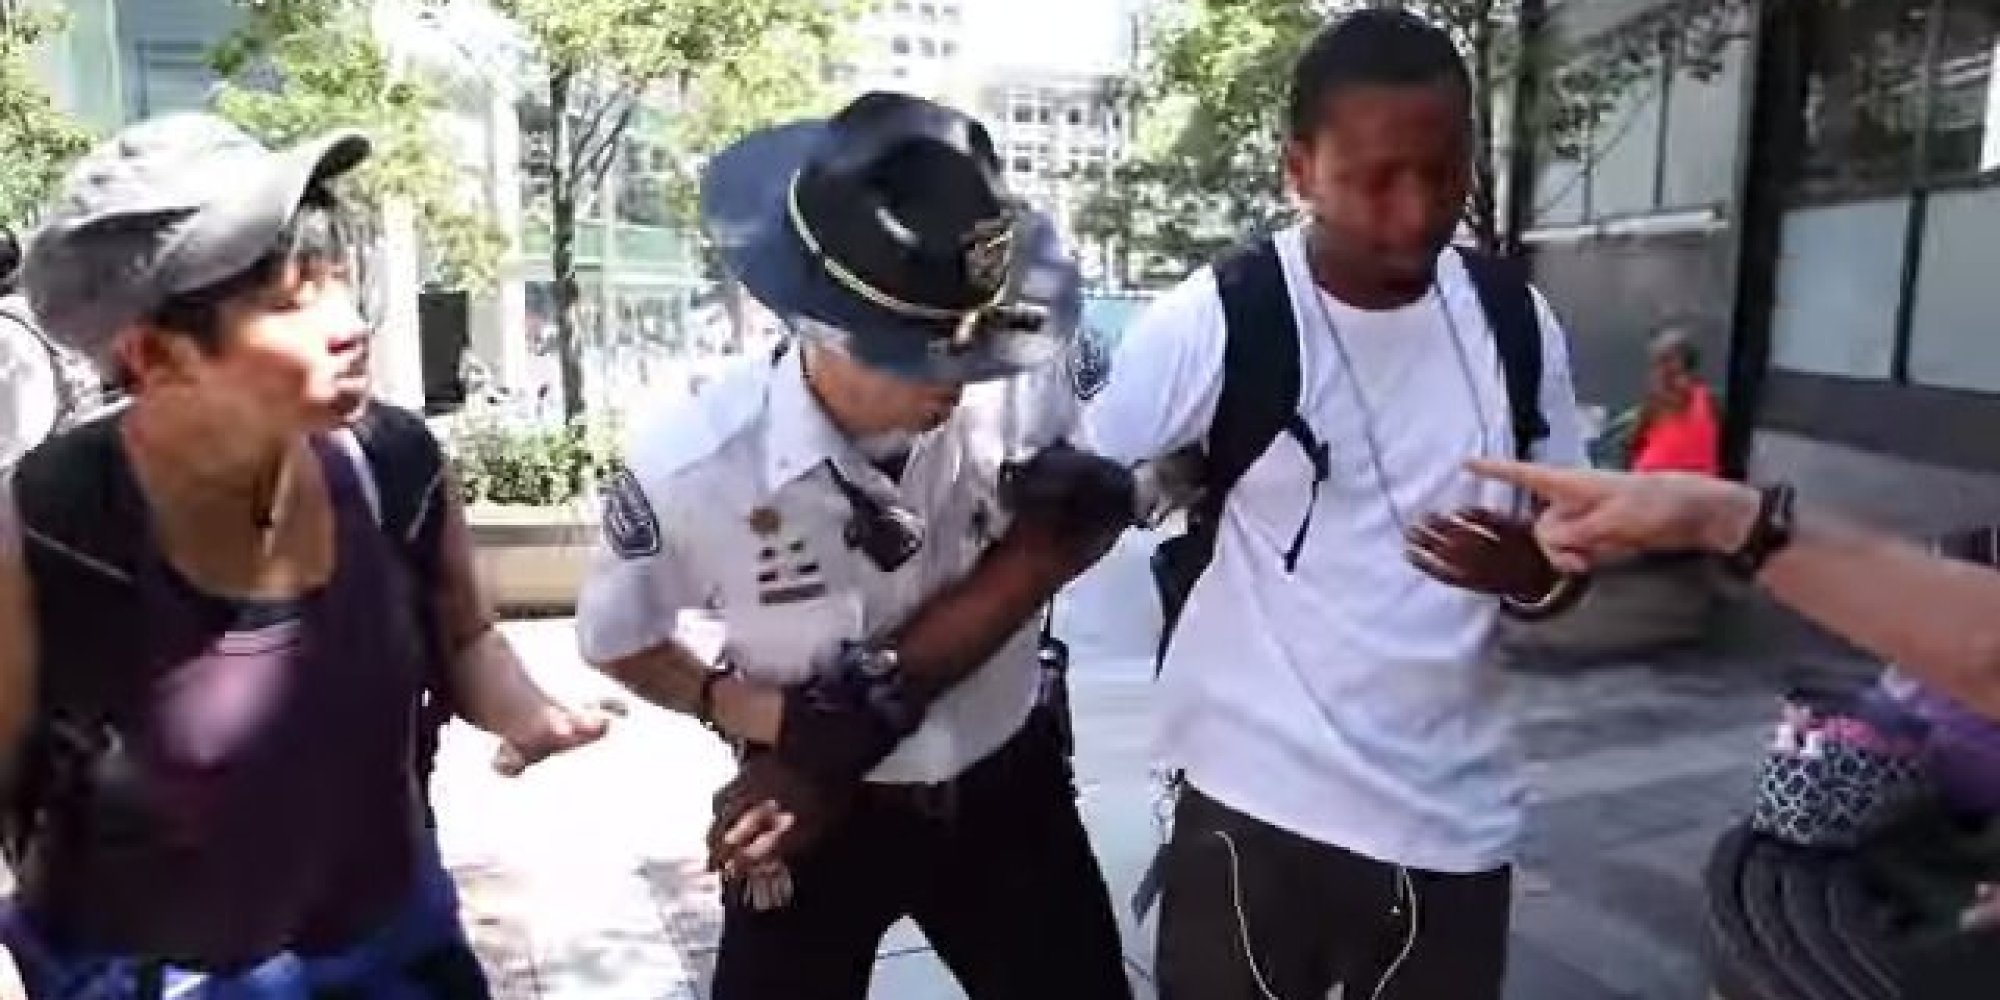 Mall Cop Reportedly Pepper-Sprays Black Man, Ignores Racist Heckler At Pro-Palestine Protest